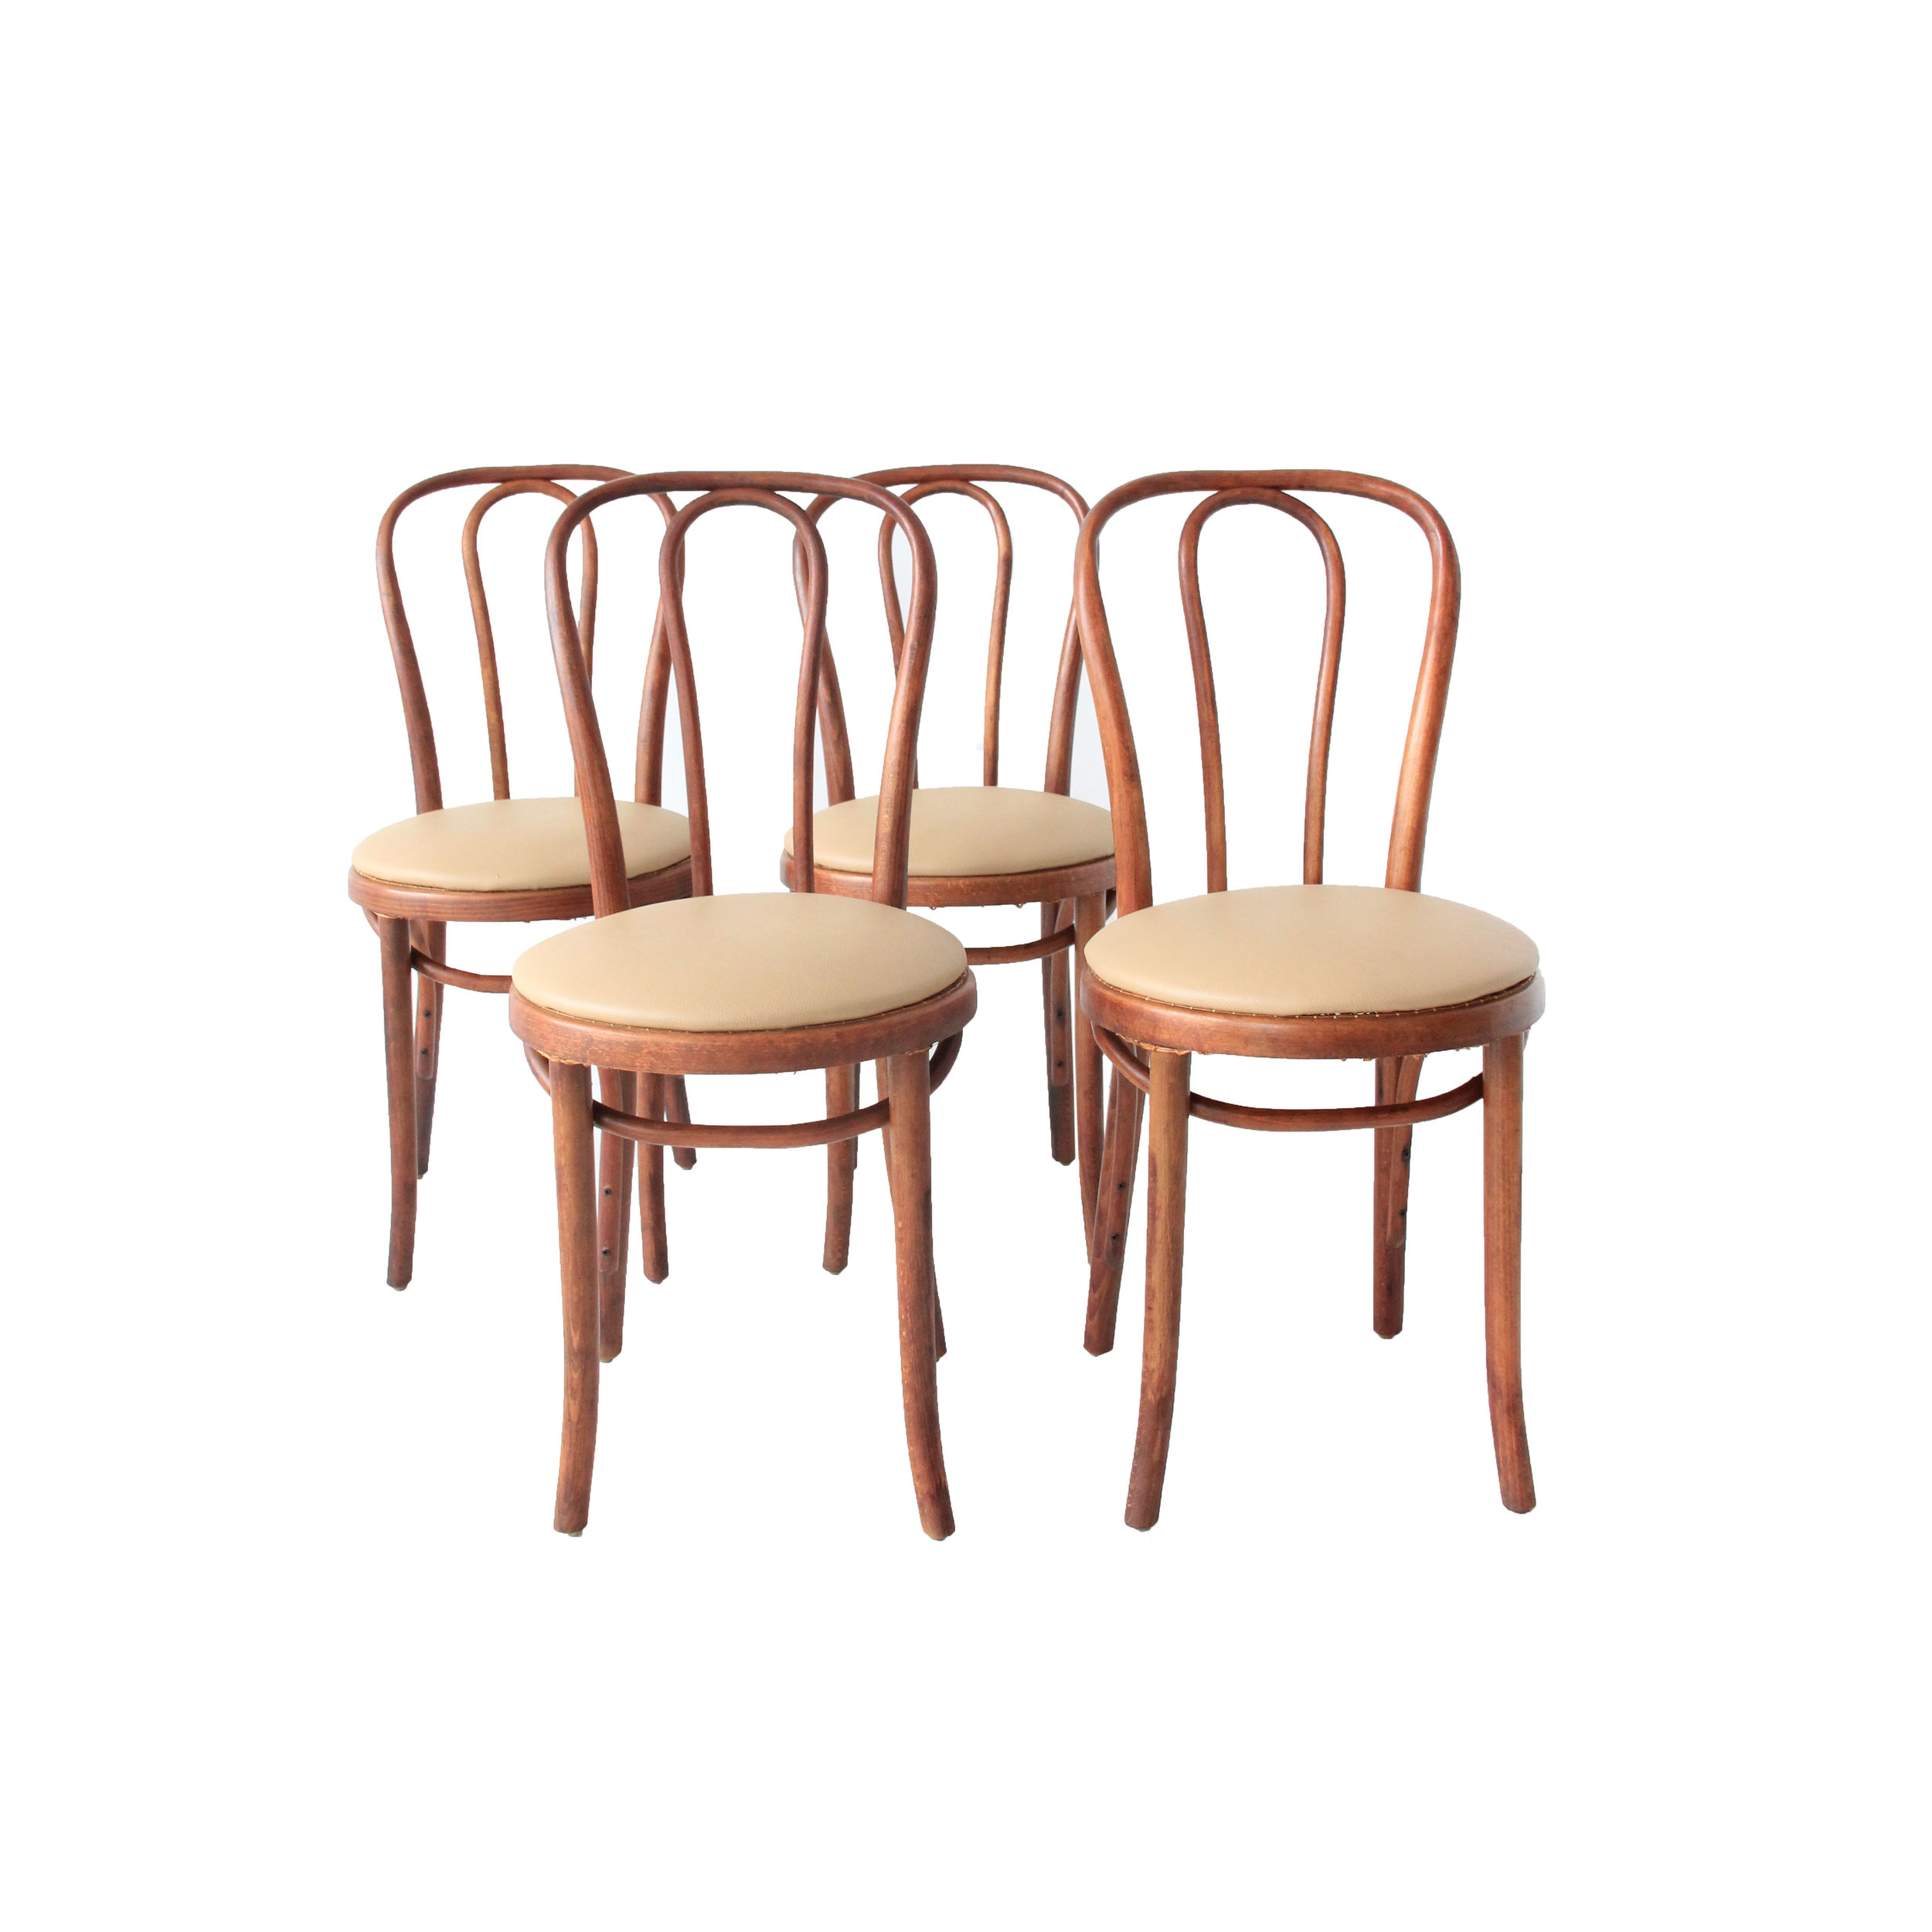 Vintage Thonet Dining Chairs